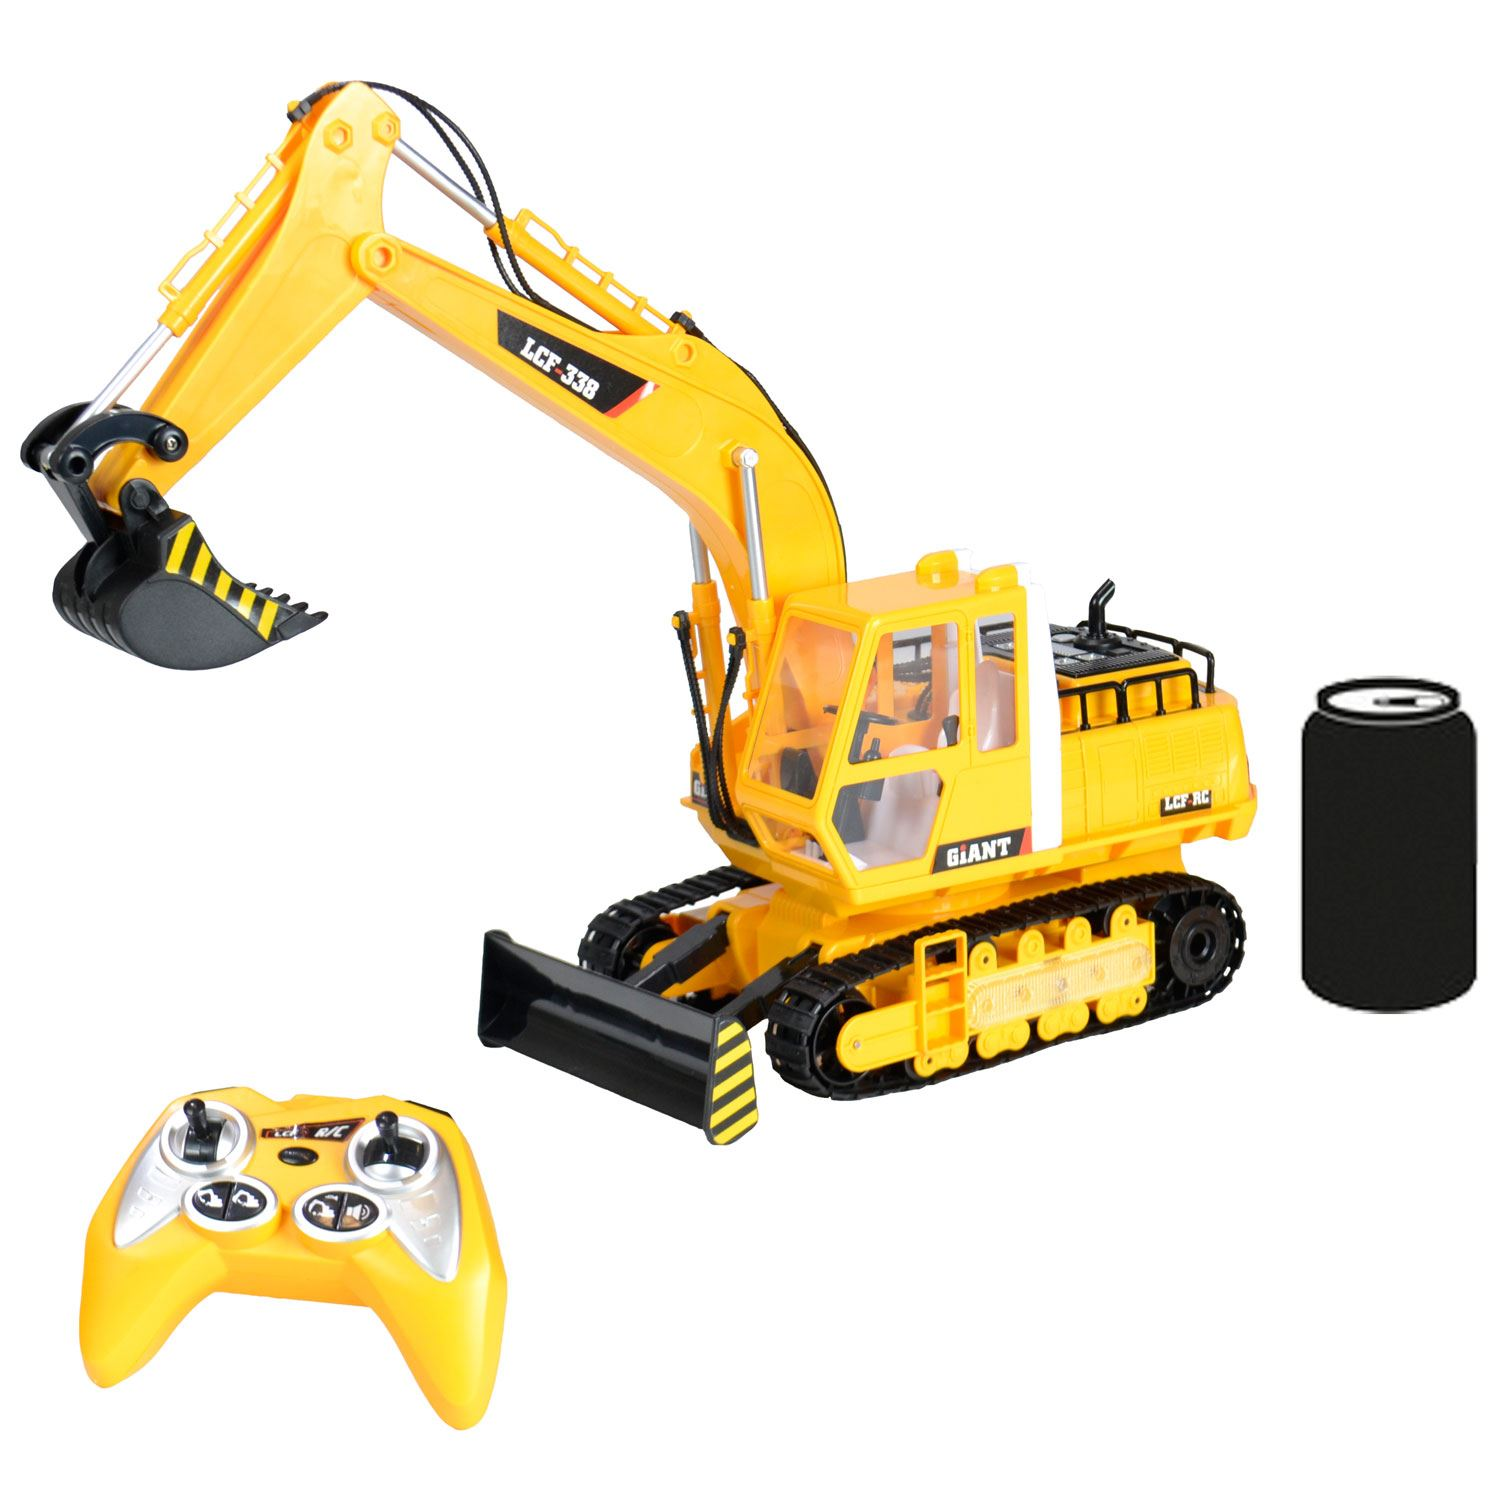 Digger Toy Details About Radio Remote Control Rc Jcb Toy Excavator Bulldozer Digger Truck Construction